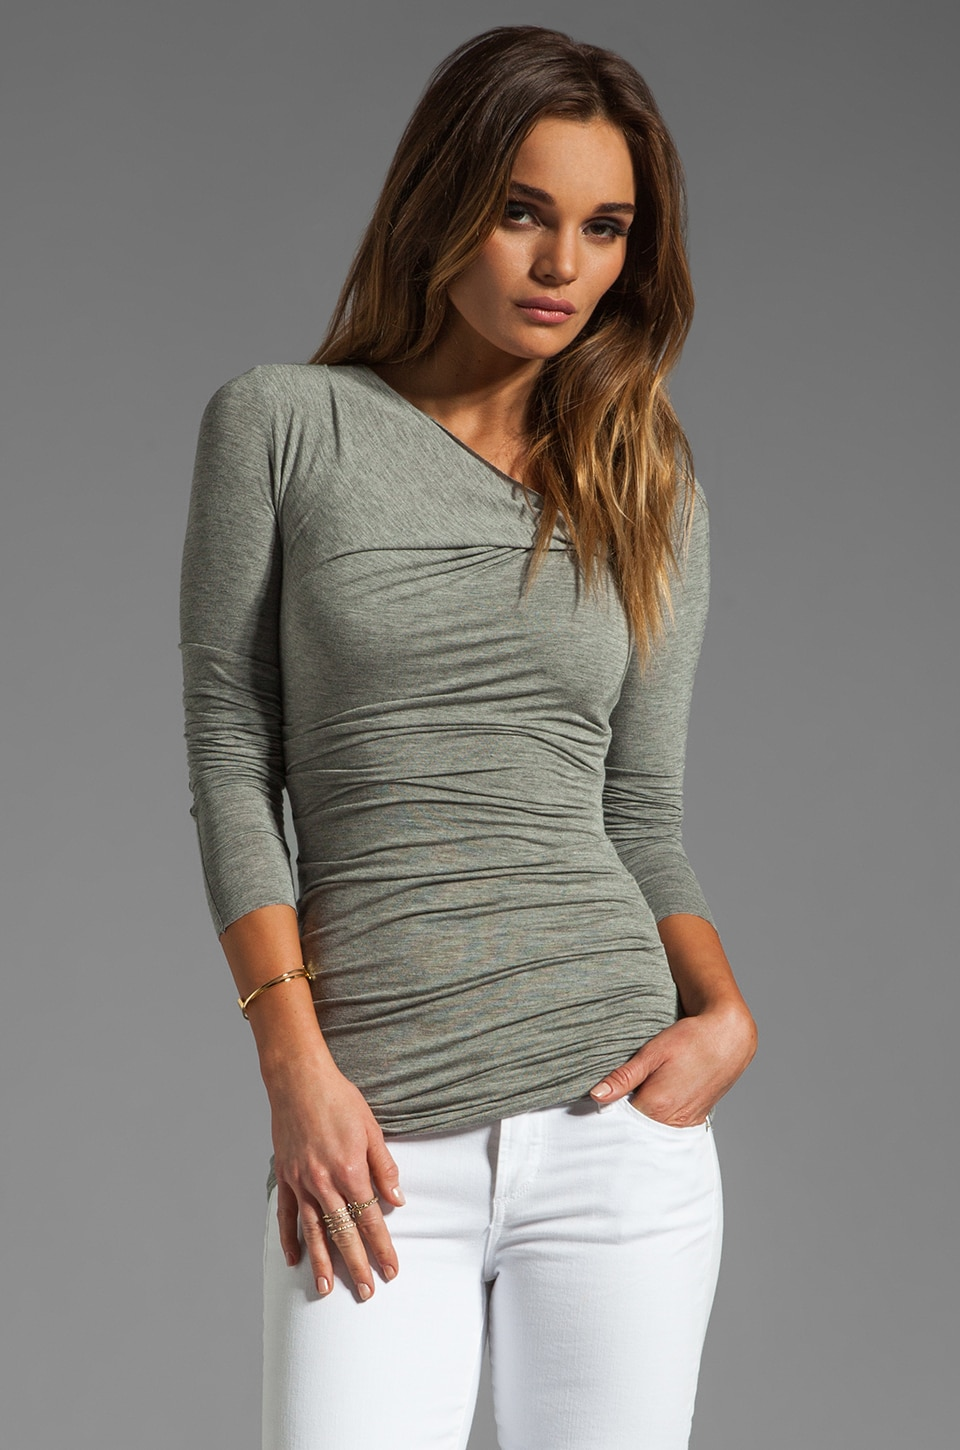 Bailey 44 Tie Breaker Top in Grey